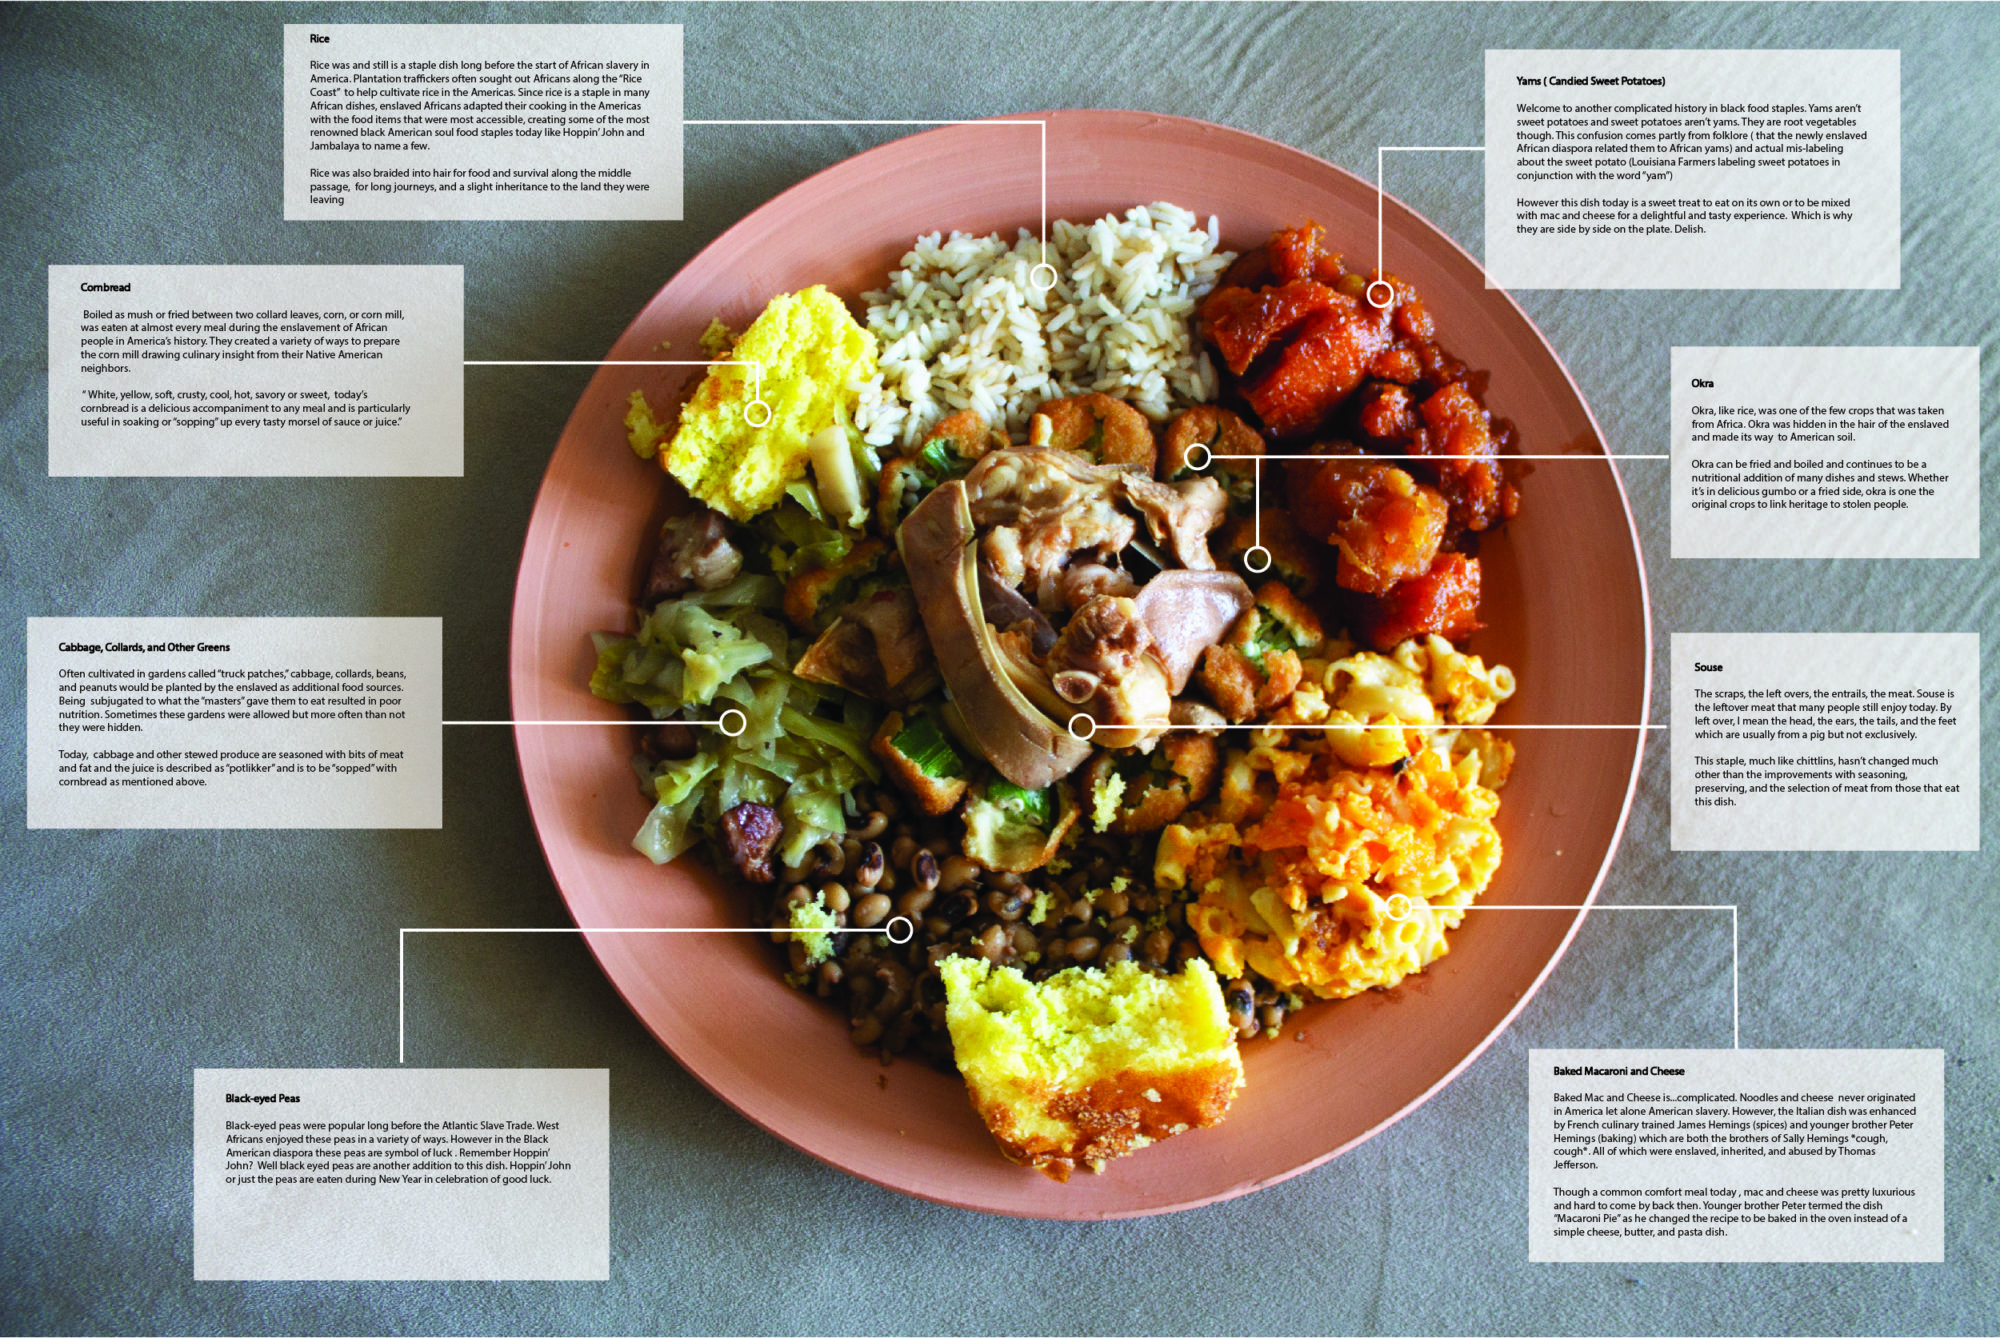 Out the Mud : A relationship between the food, the plate, and blackness (2)